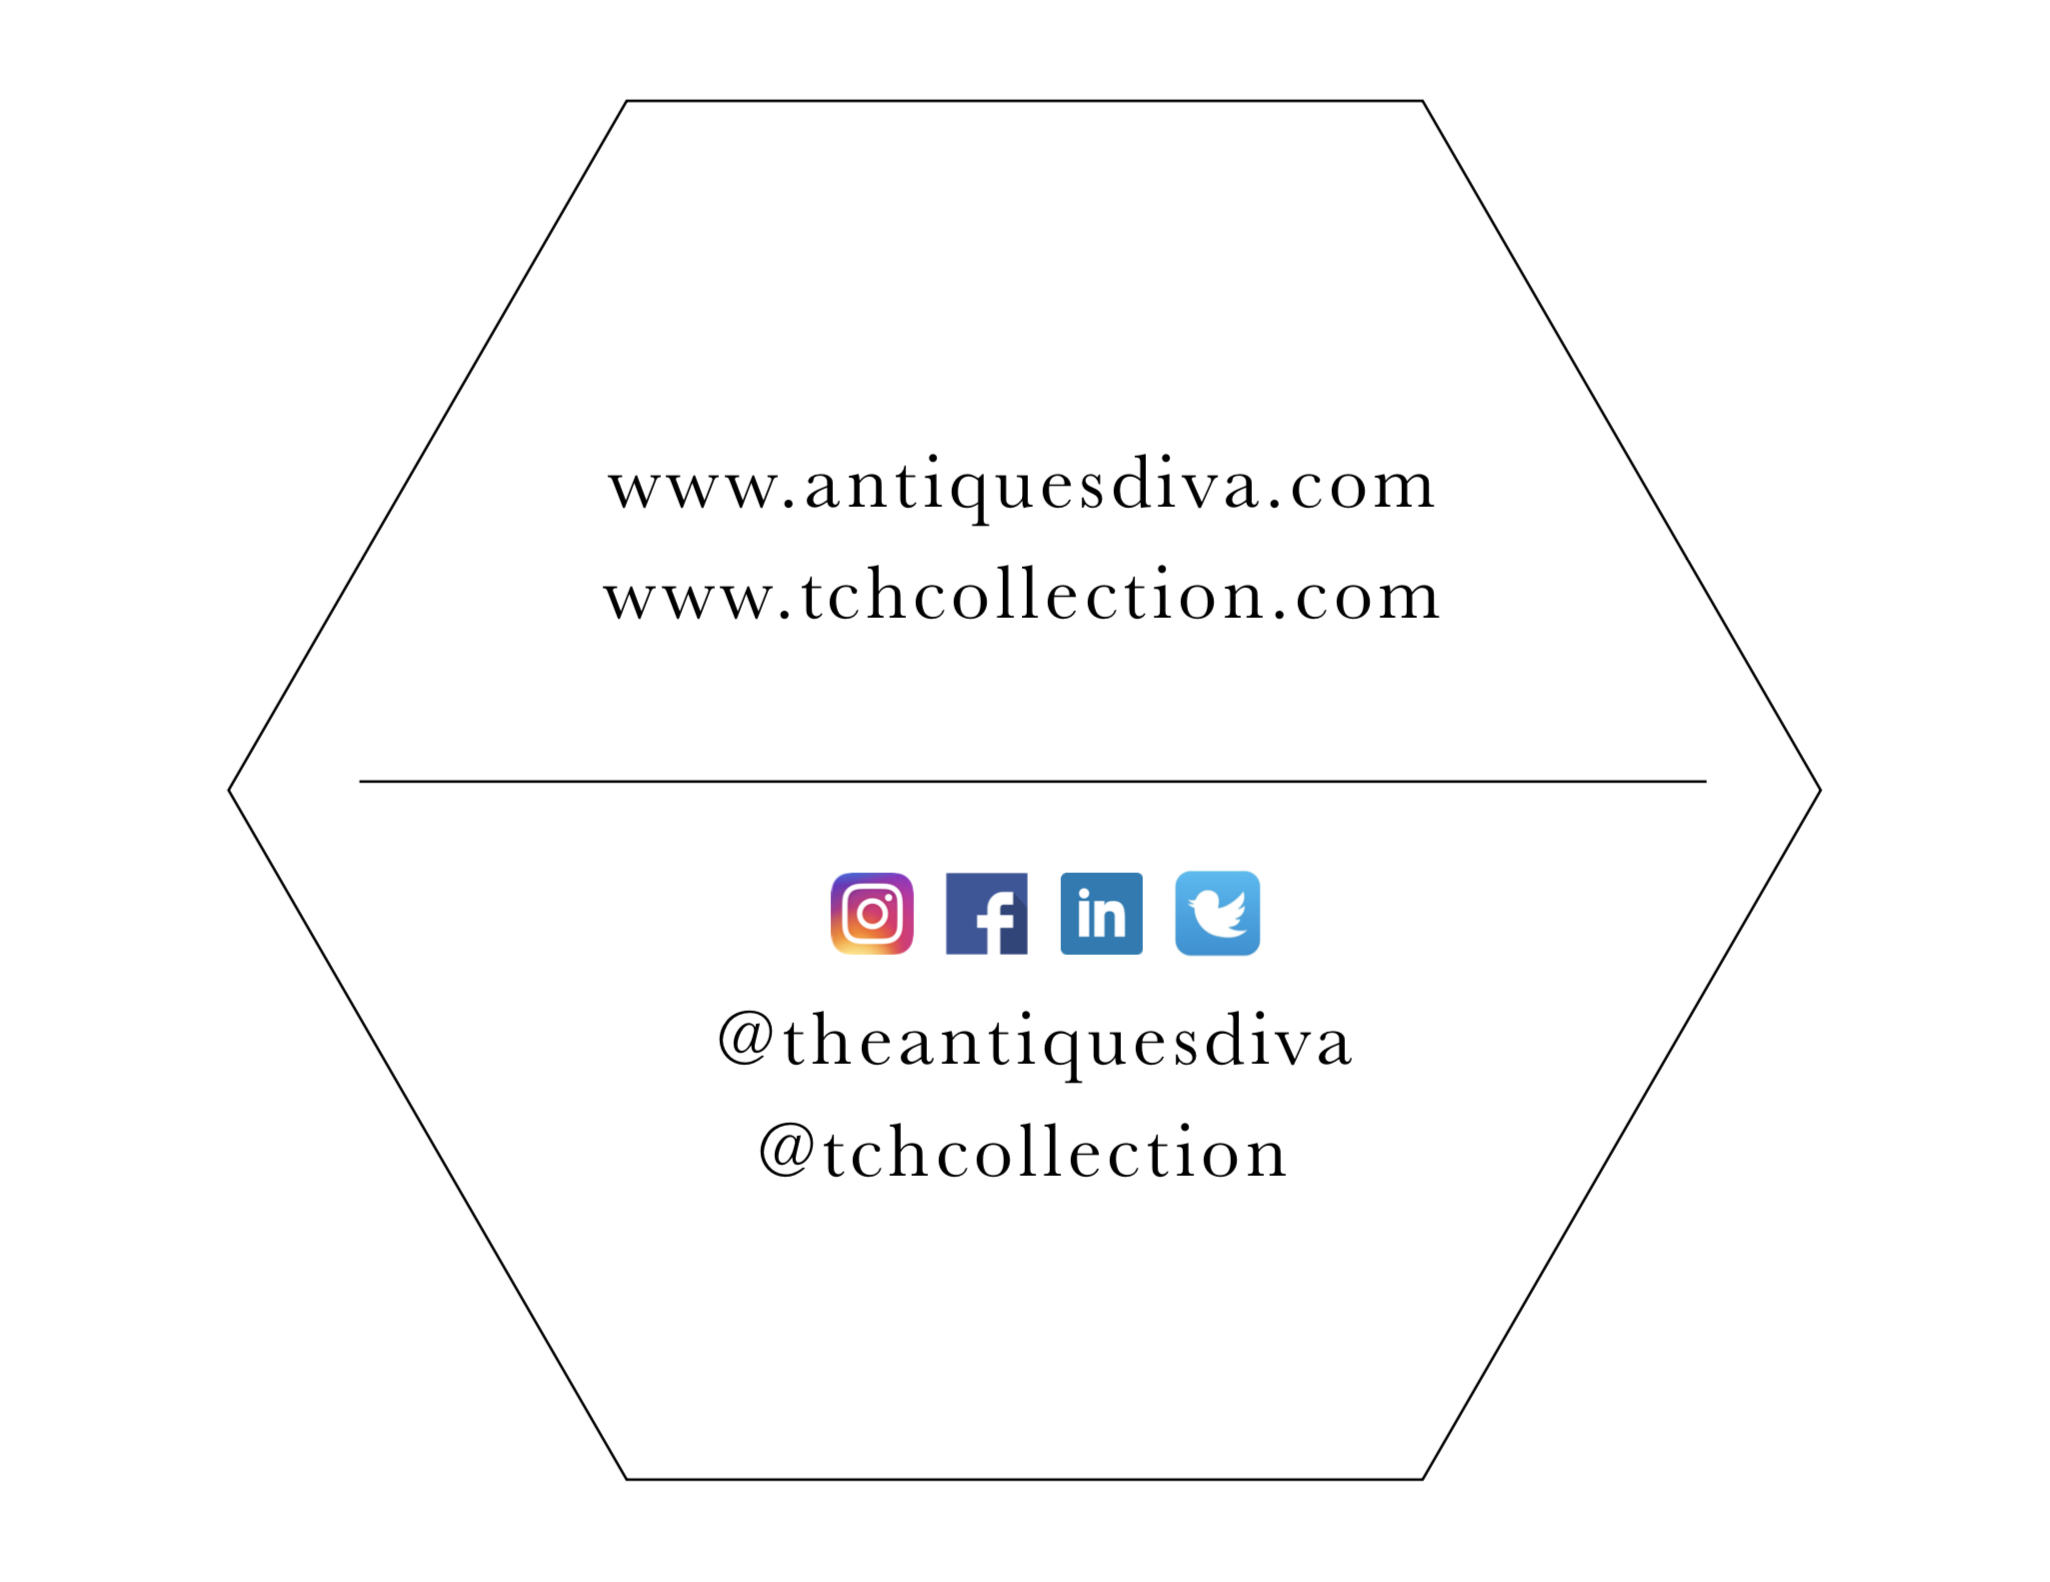 antiques diva press kit - sarah pottharst creative consultant 9.png